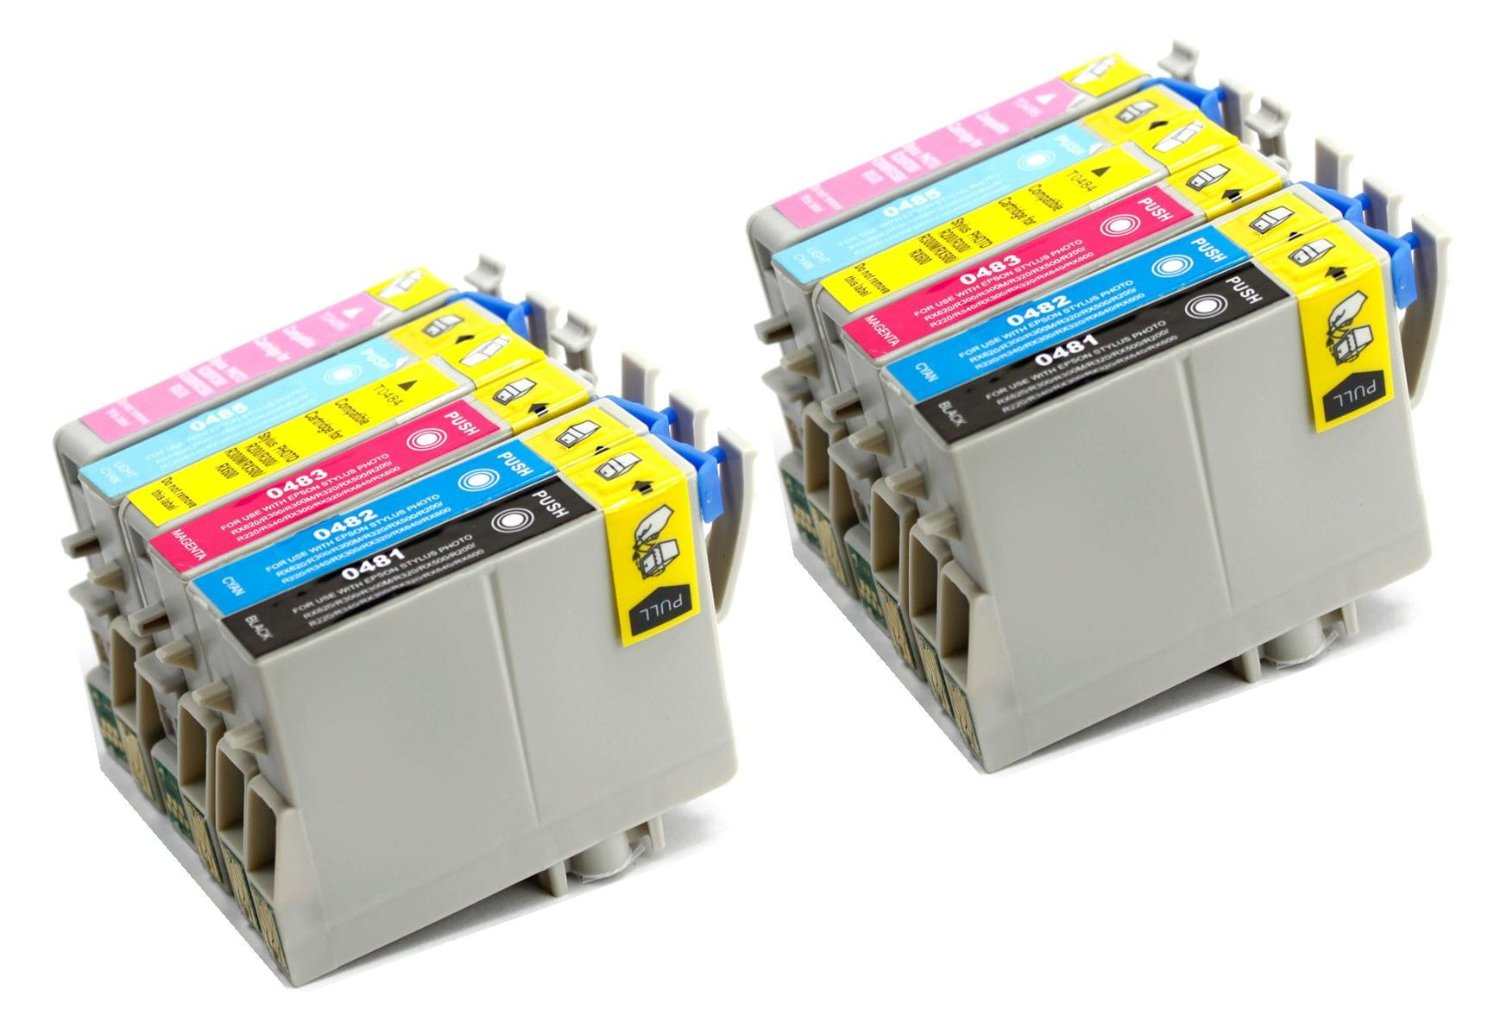 12 Pack Remanufactured Inkjet Cartridges for Epson T048 #48 T048120 T048220 T048320 T048420 T048520 T048620 Compatible With Epson Stylus Photo R200, Stylus Photo R220, Stylus Photo R300, Stylus Photo R300M, Stylus Photo R320, Stylus Photo R340, Stylus Photo R500, Stylus Photo R600, Stylus Photo